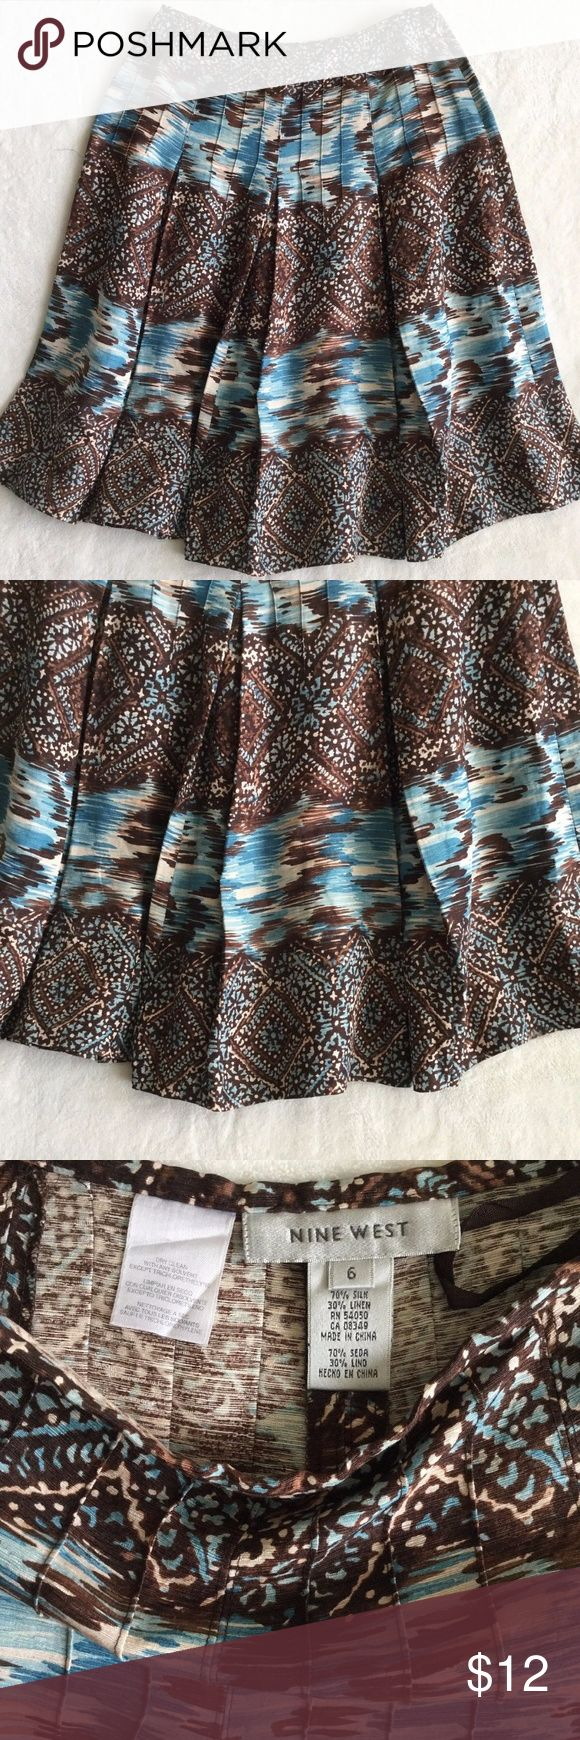 "Nine West Skirt Size 6 Lined This is a beautiful blue, brown, and cream print pleated skirt.  Brand: Nine West Size: 6 Material: 70% Silk, 30% Linen Waist: 15"" across Length: 26 1/2"" long  Excellent condition. Nine West Skirts"